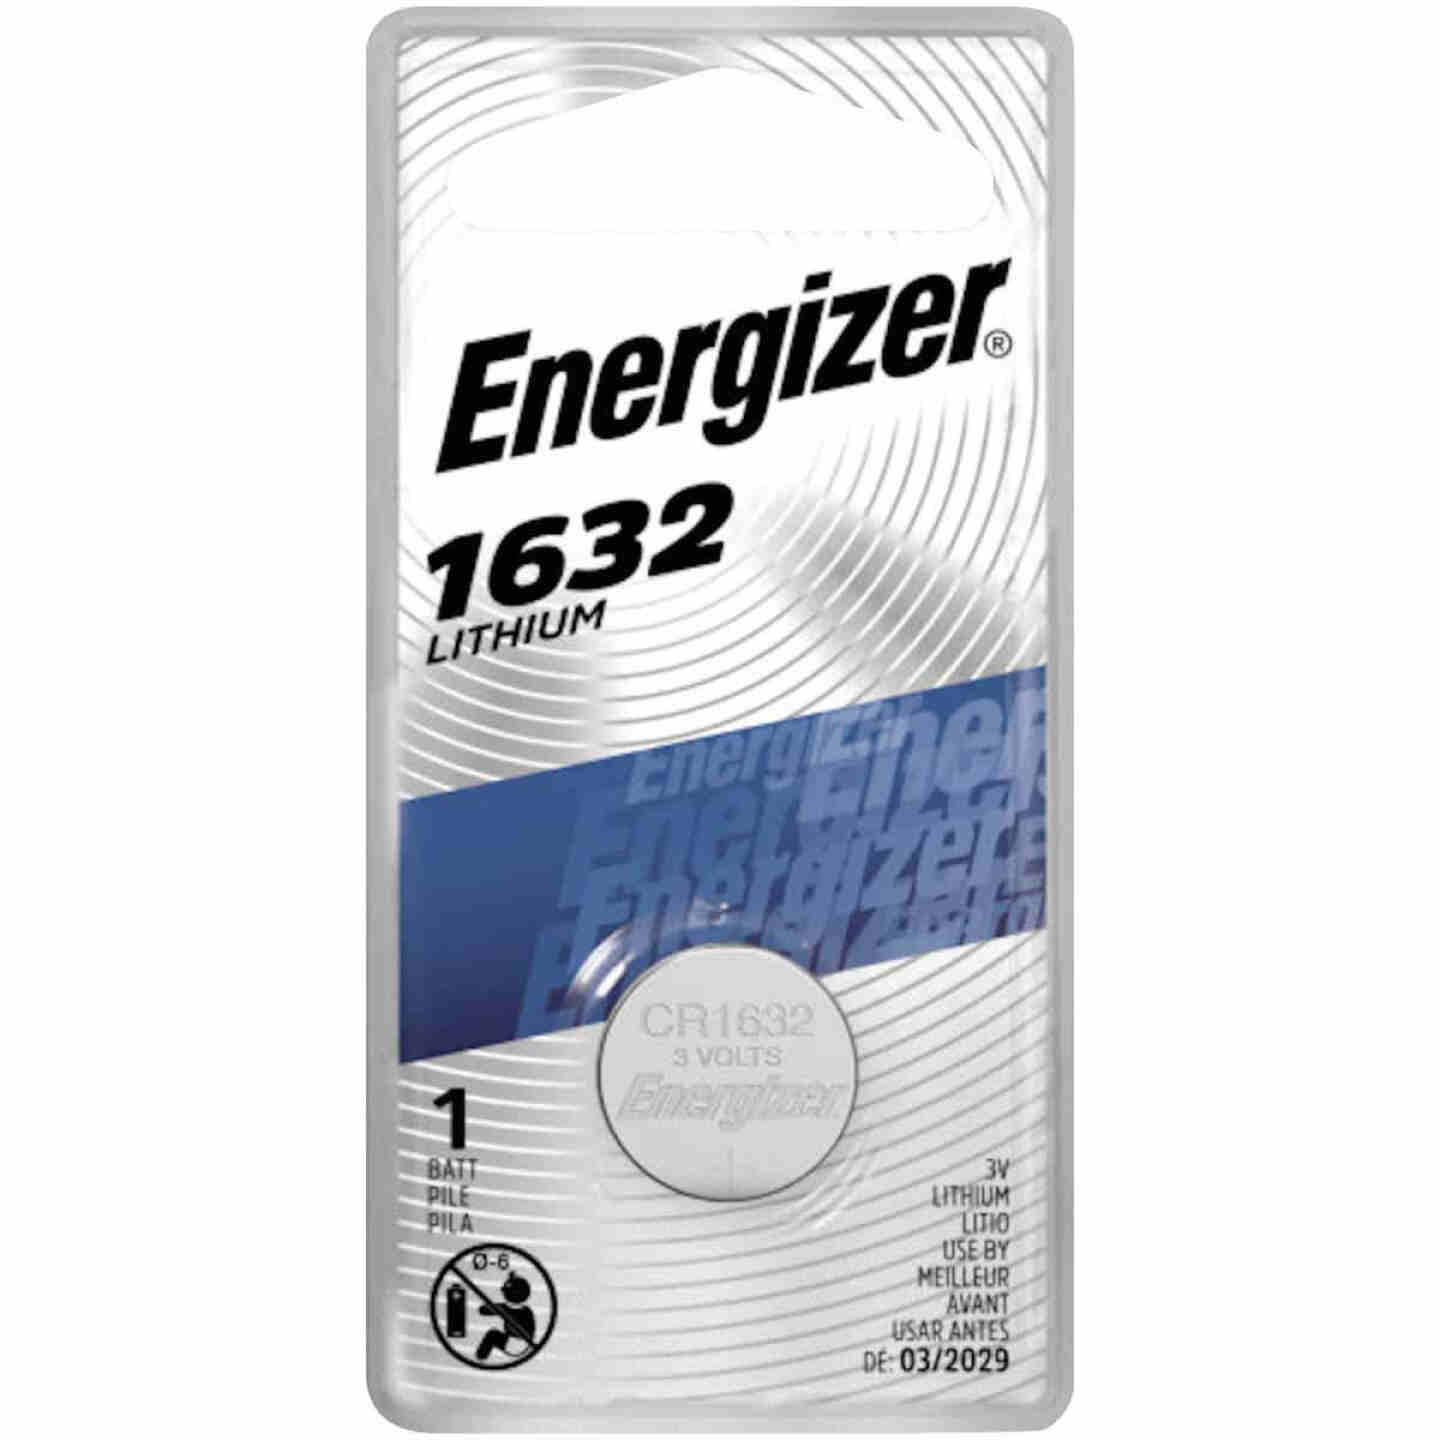 Energizer 1632 Lithium Coin Cell Battery Image 1